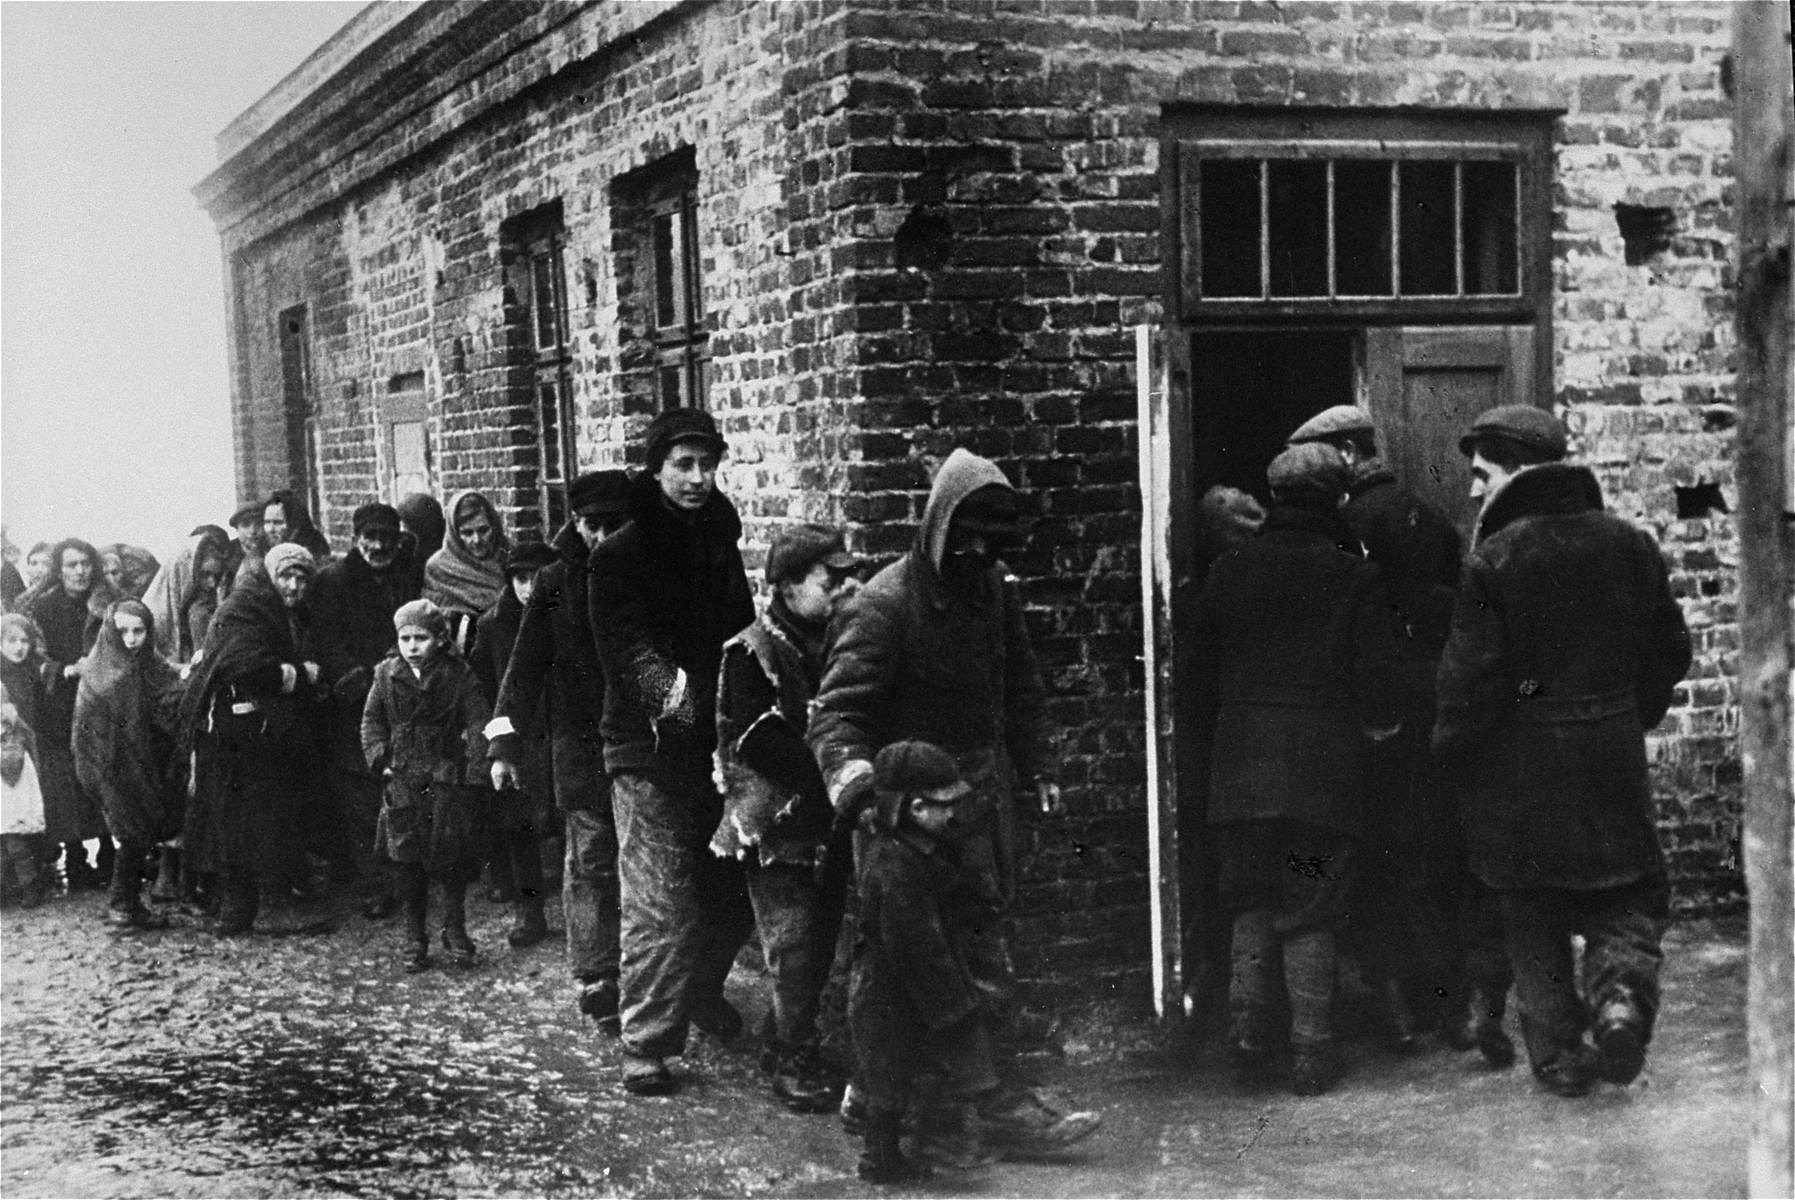 Jews in the Warsaw ghetto awaiting their turn in the soup kitchen.